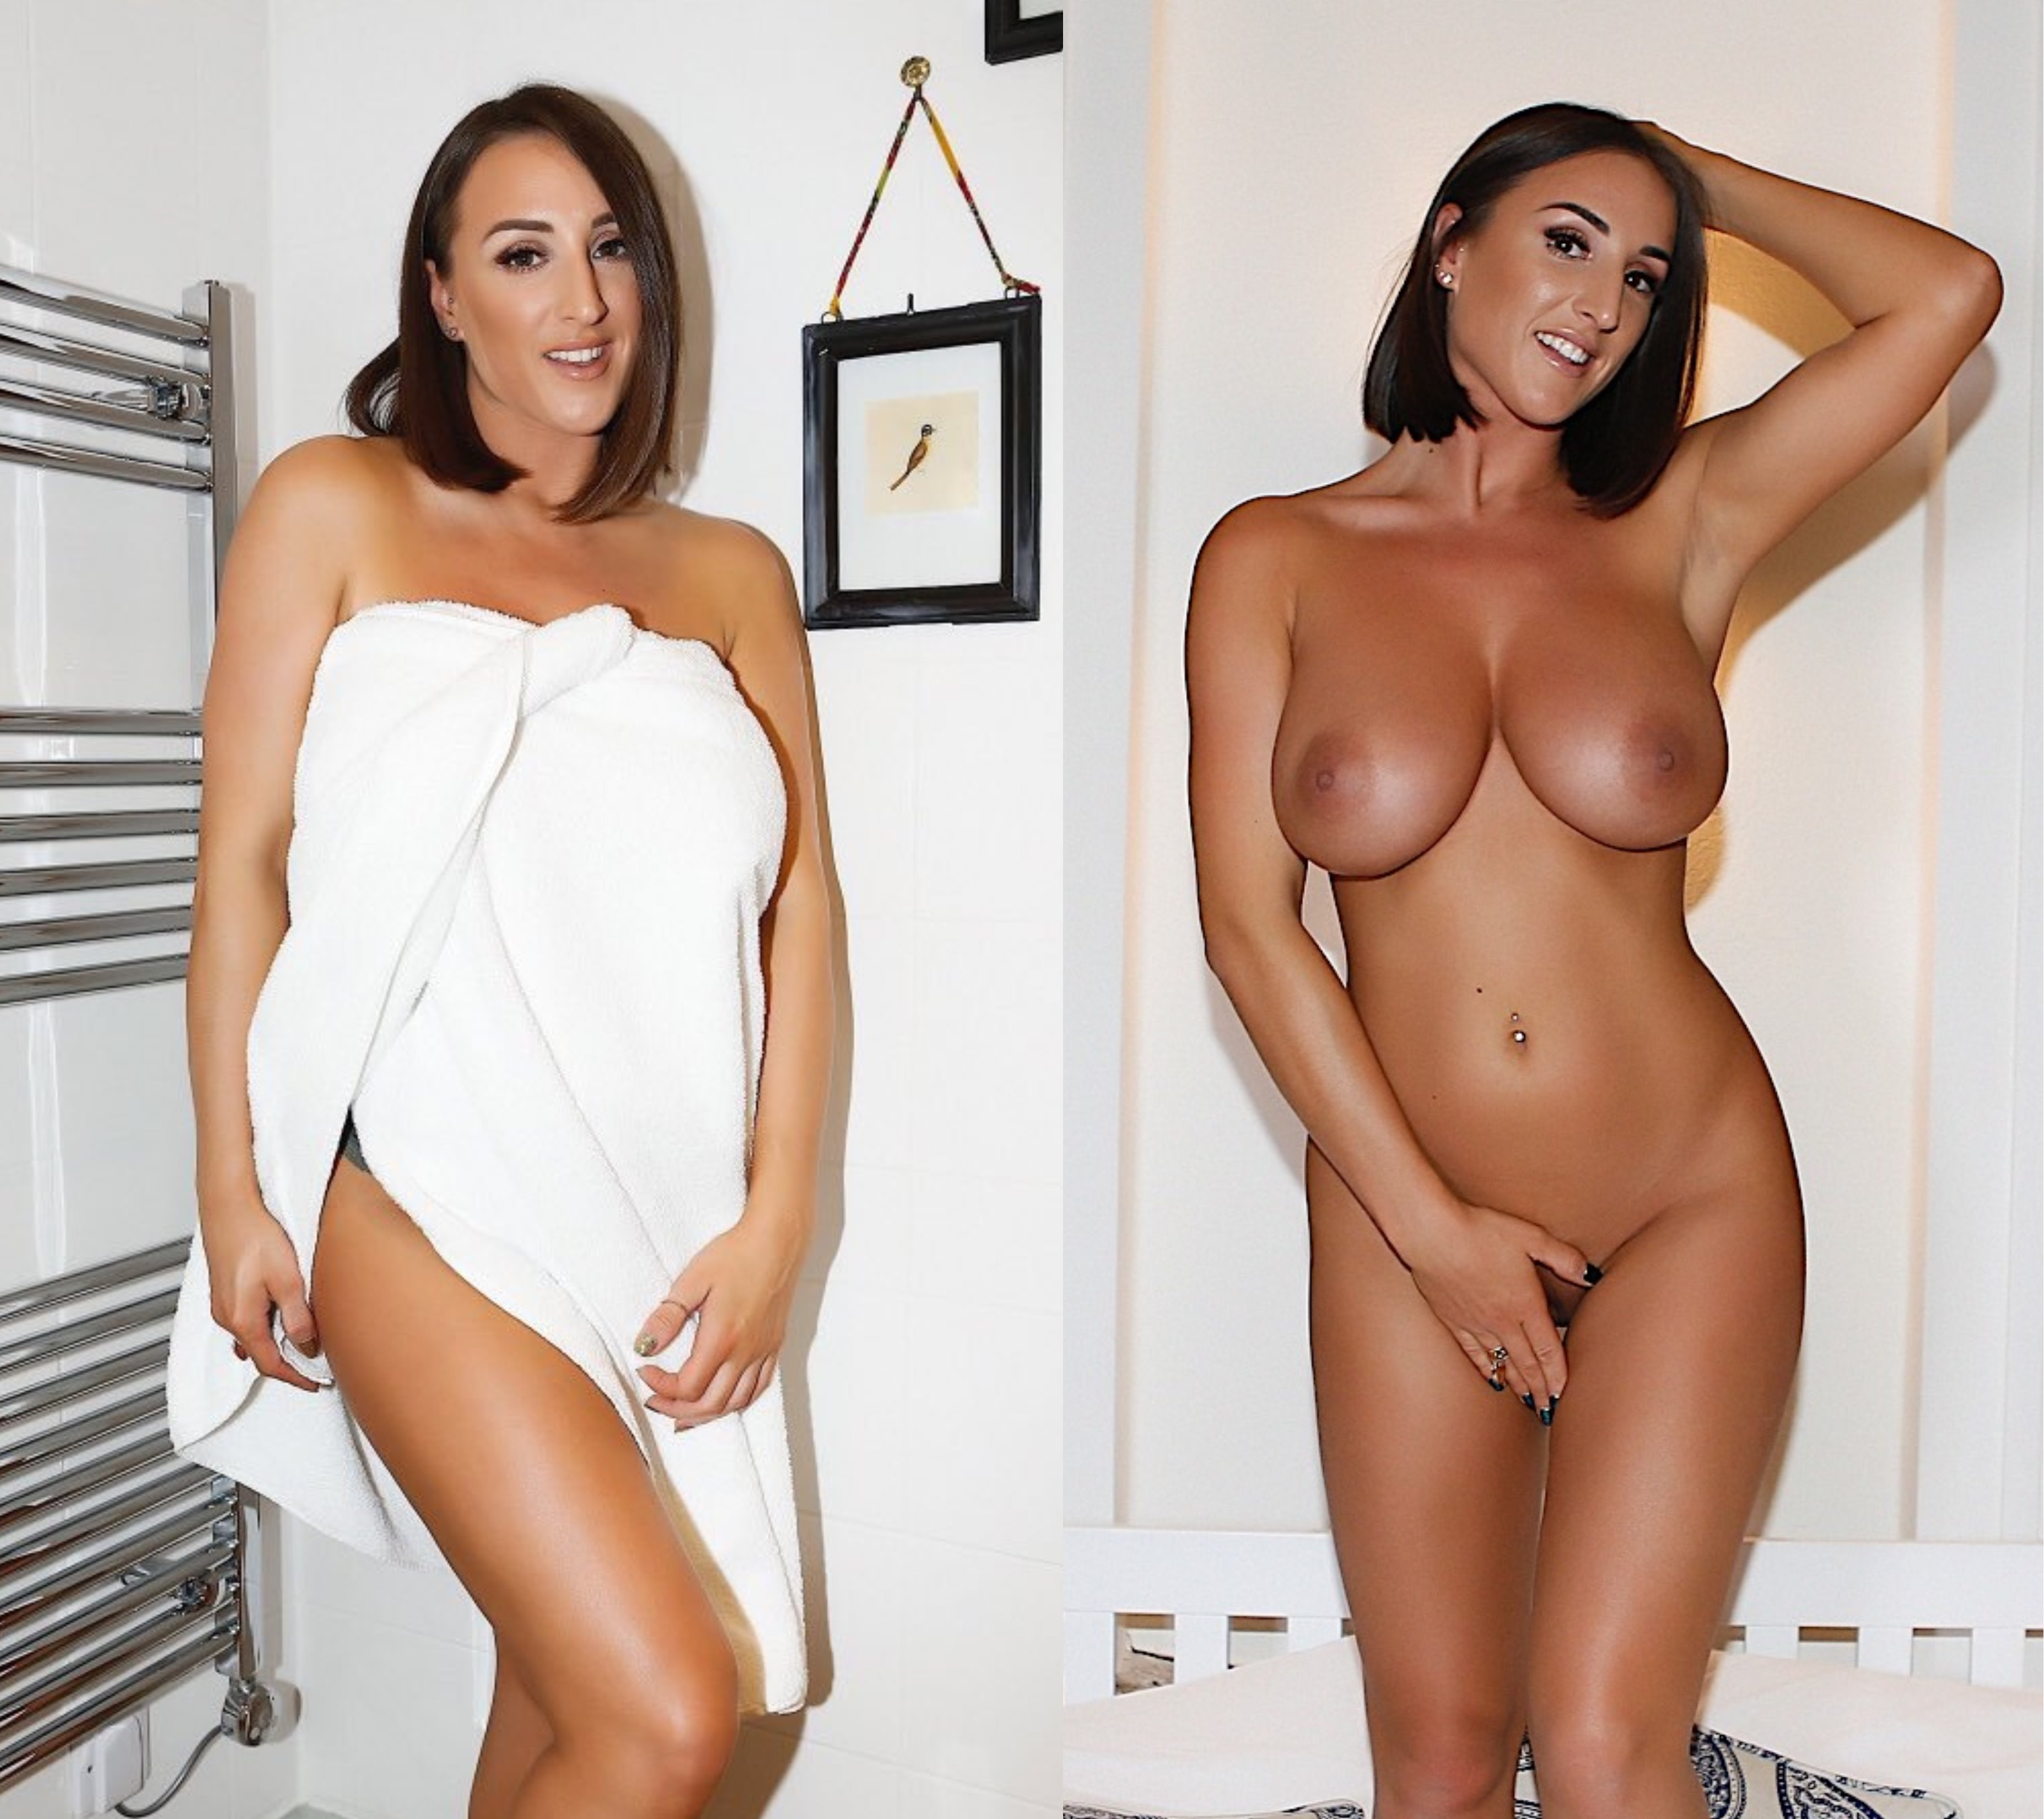 Stacey poole xxx